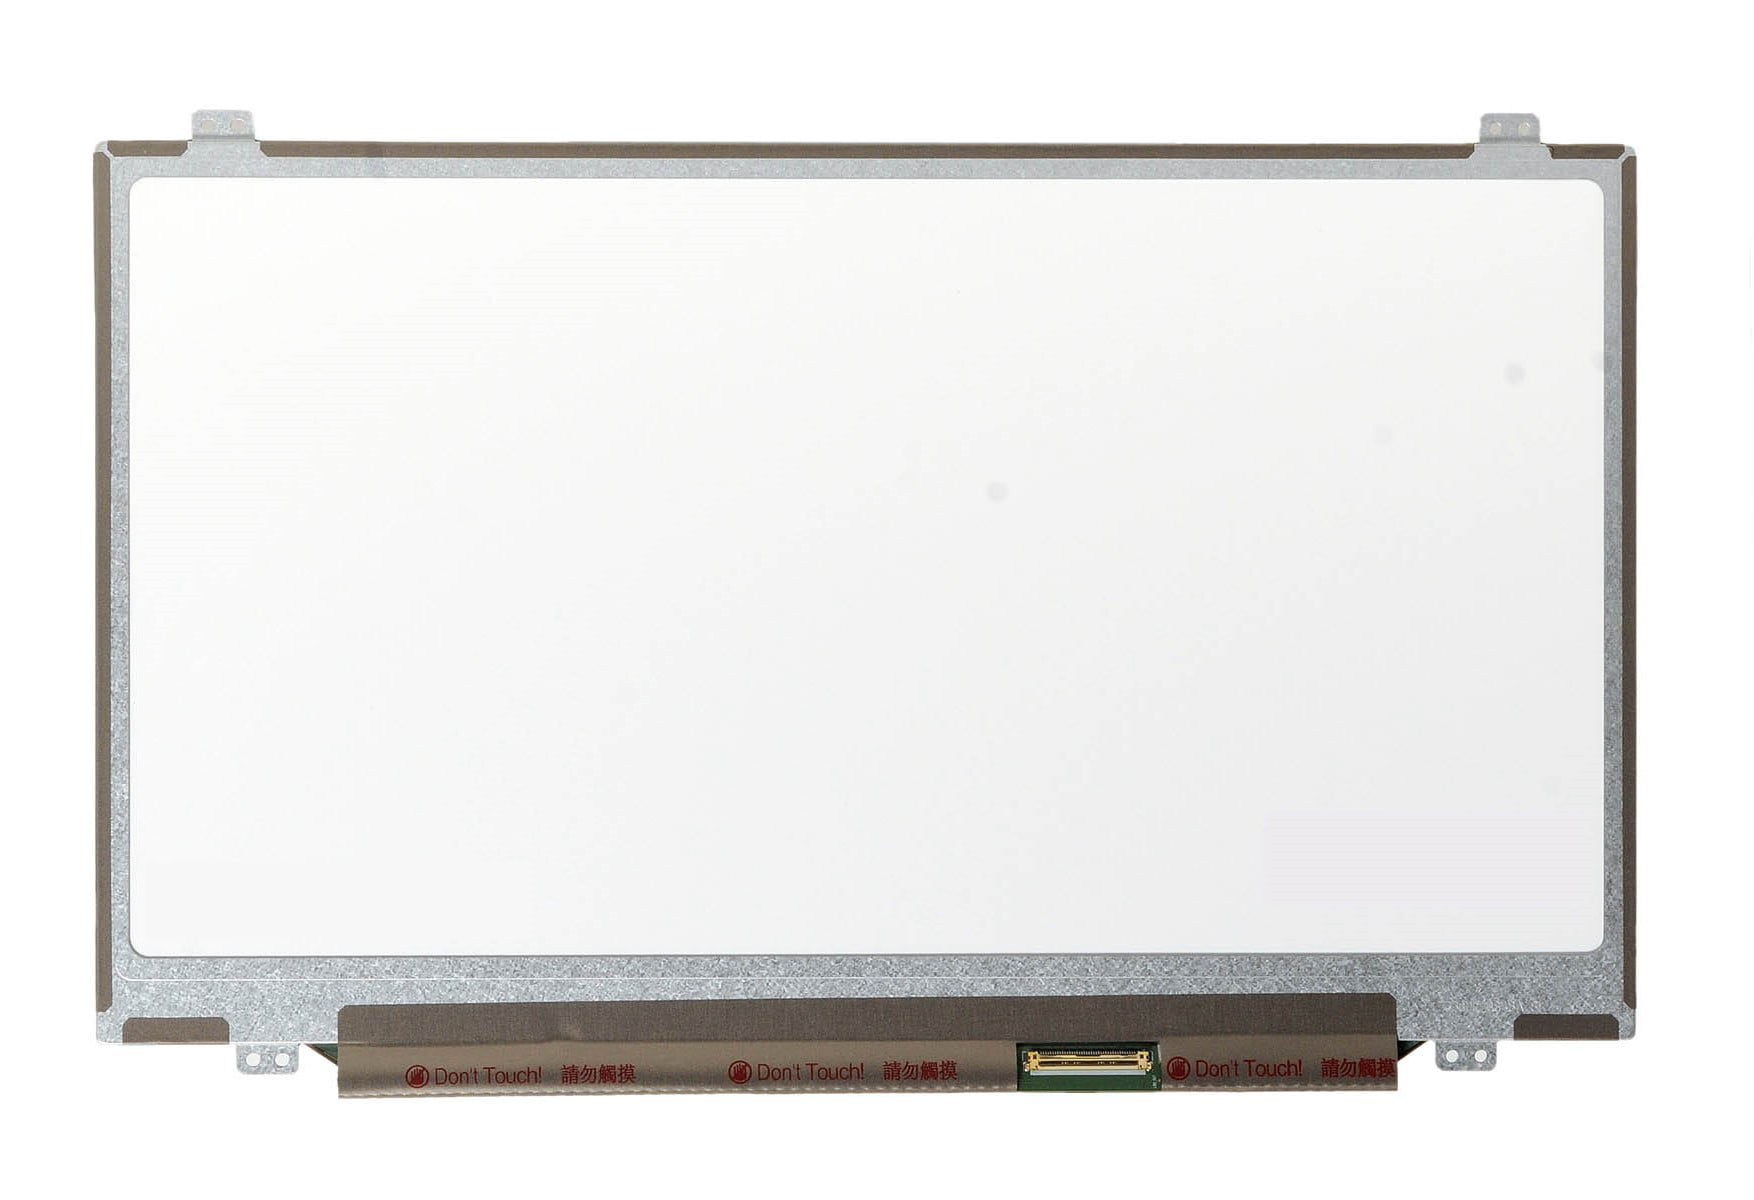 For ASUS S400CA VIVOBOOK 14.0